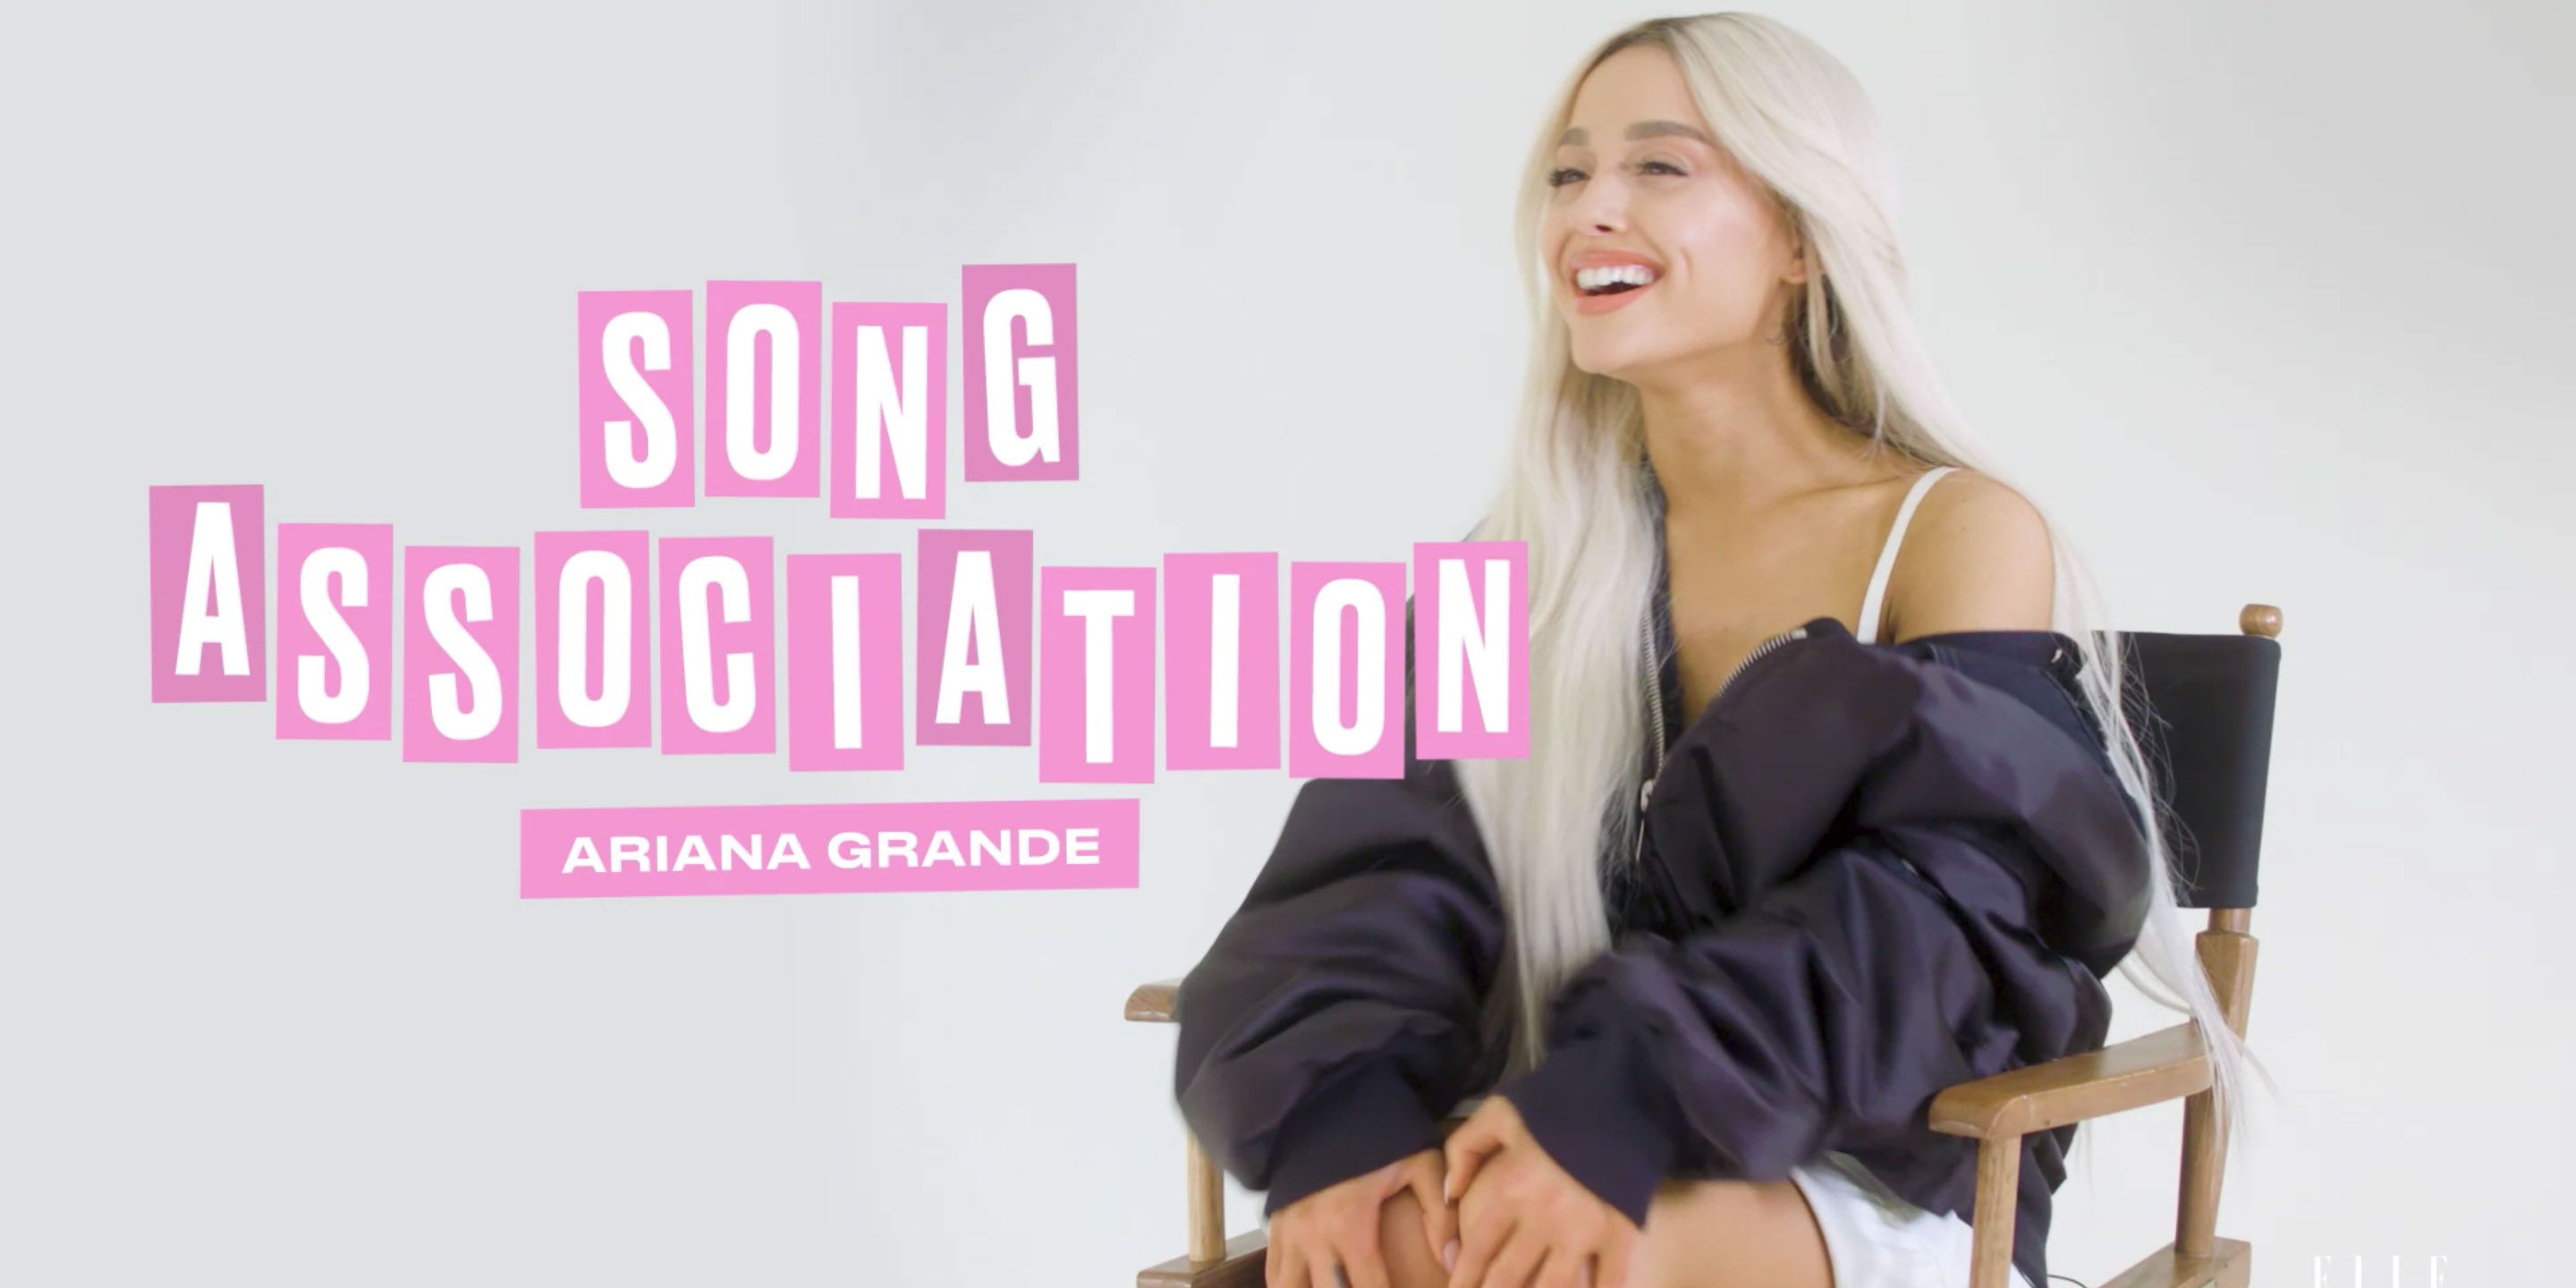 Ariana Grande sings Justin Bieber, Whitney Houston, and NEW Ariana Grande.